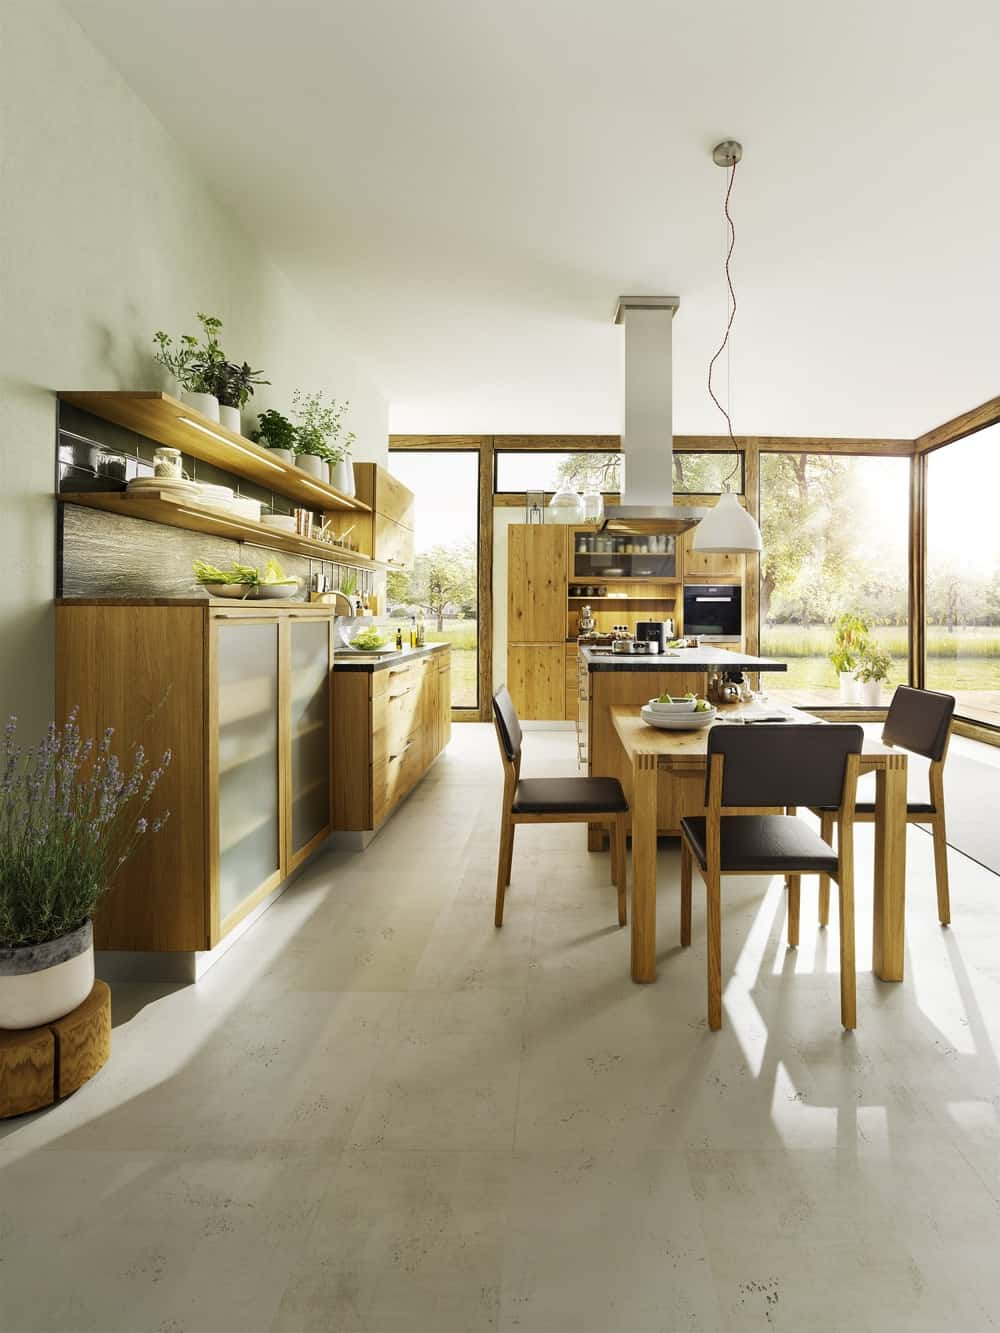 Loft Kitchen by TEAM7 has Modern Woodsy Aesthetic